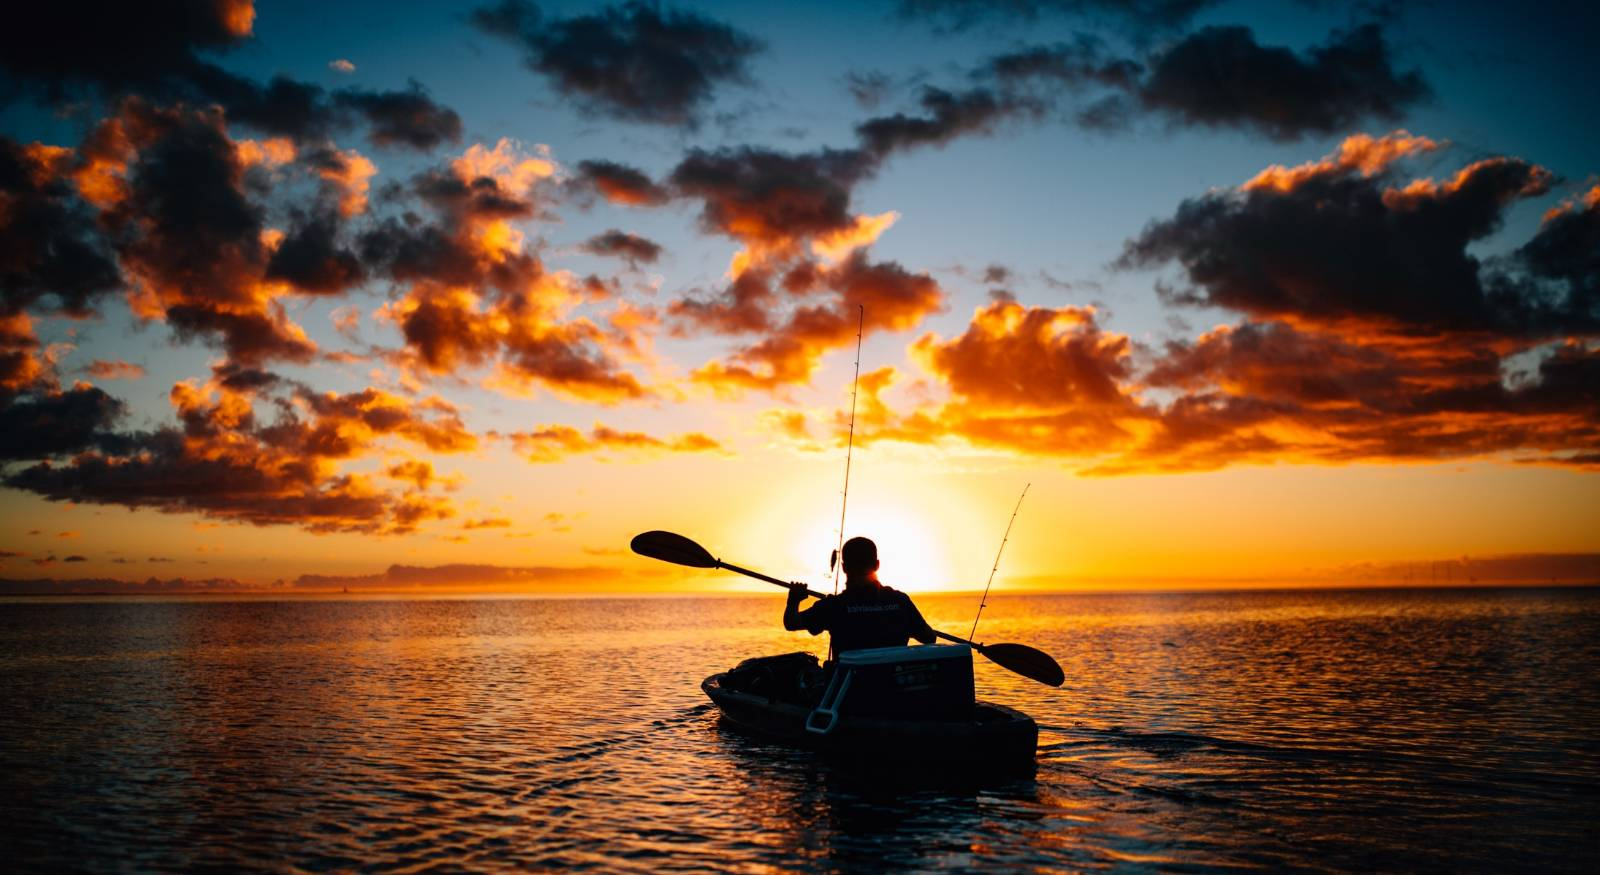 Another World Adventures Unusual Adventure Holidays Kayak kal-loftus-657624-unsplash (1)